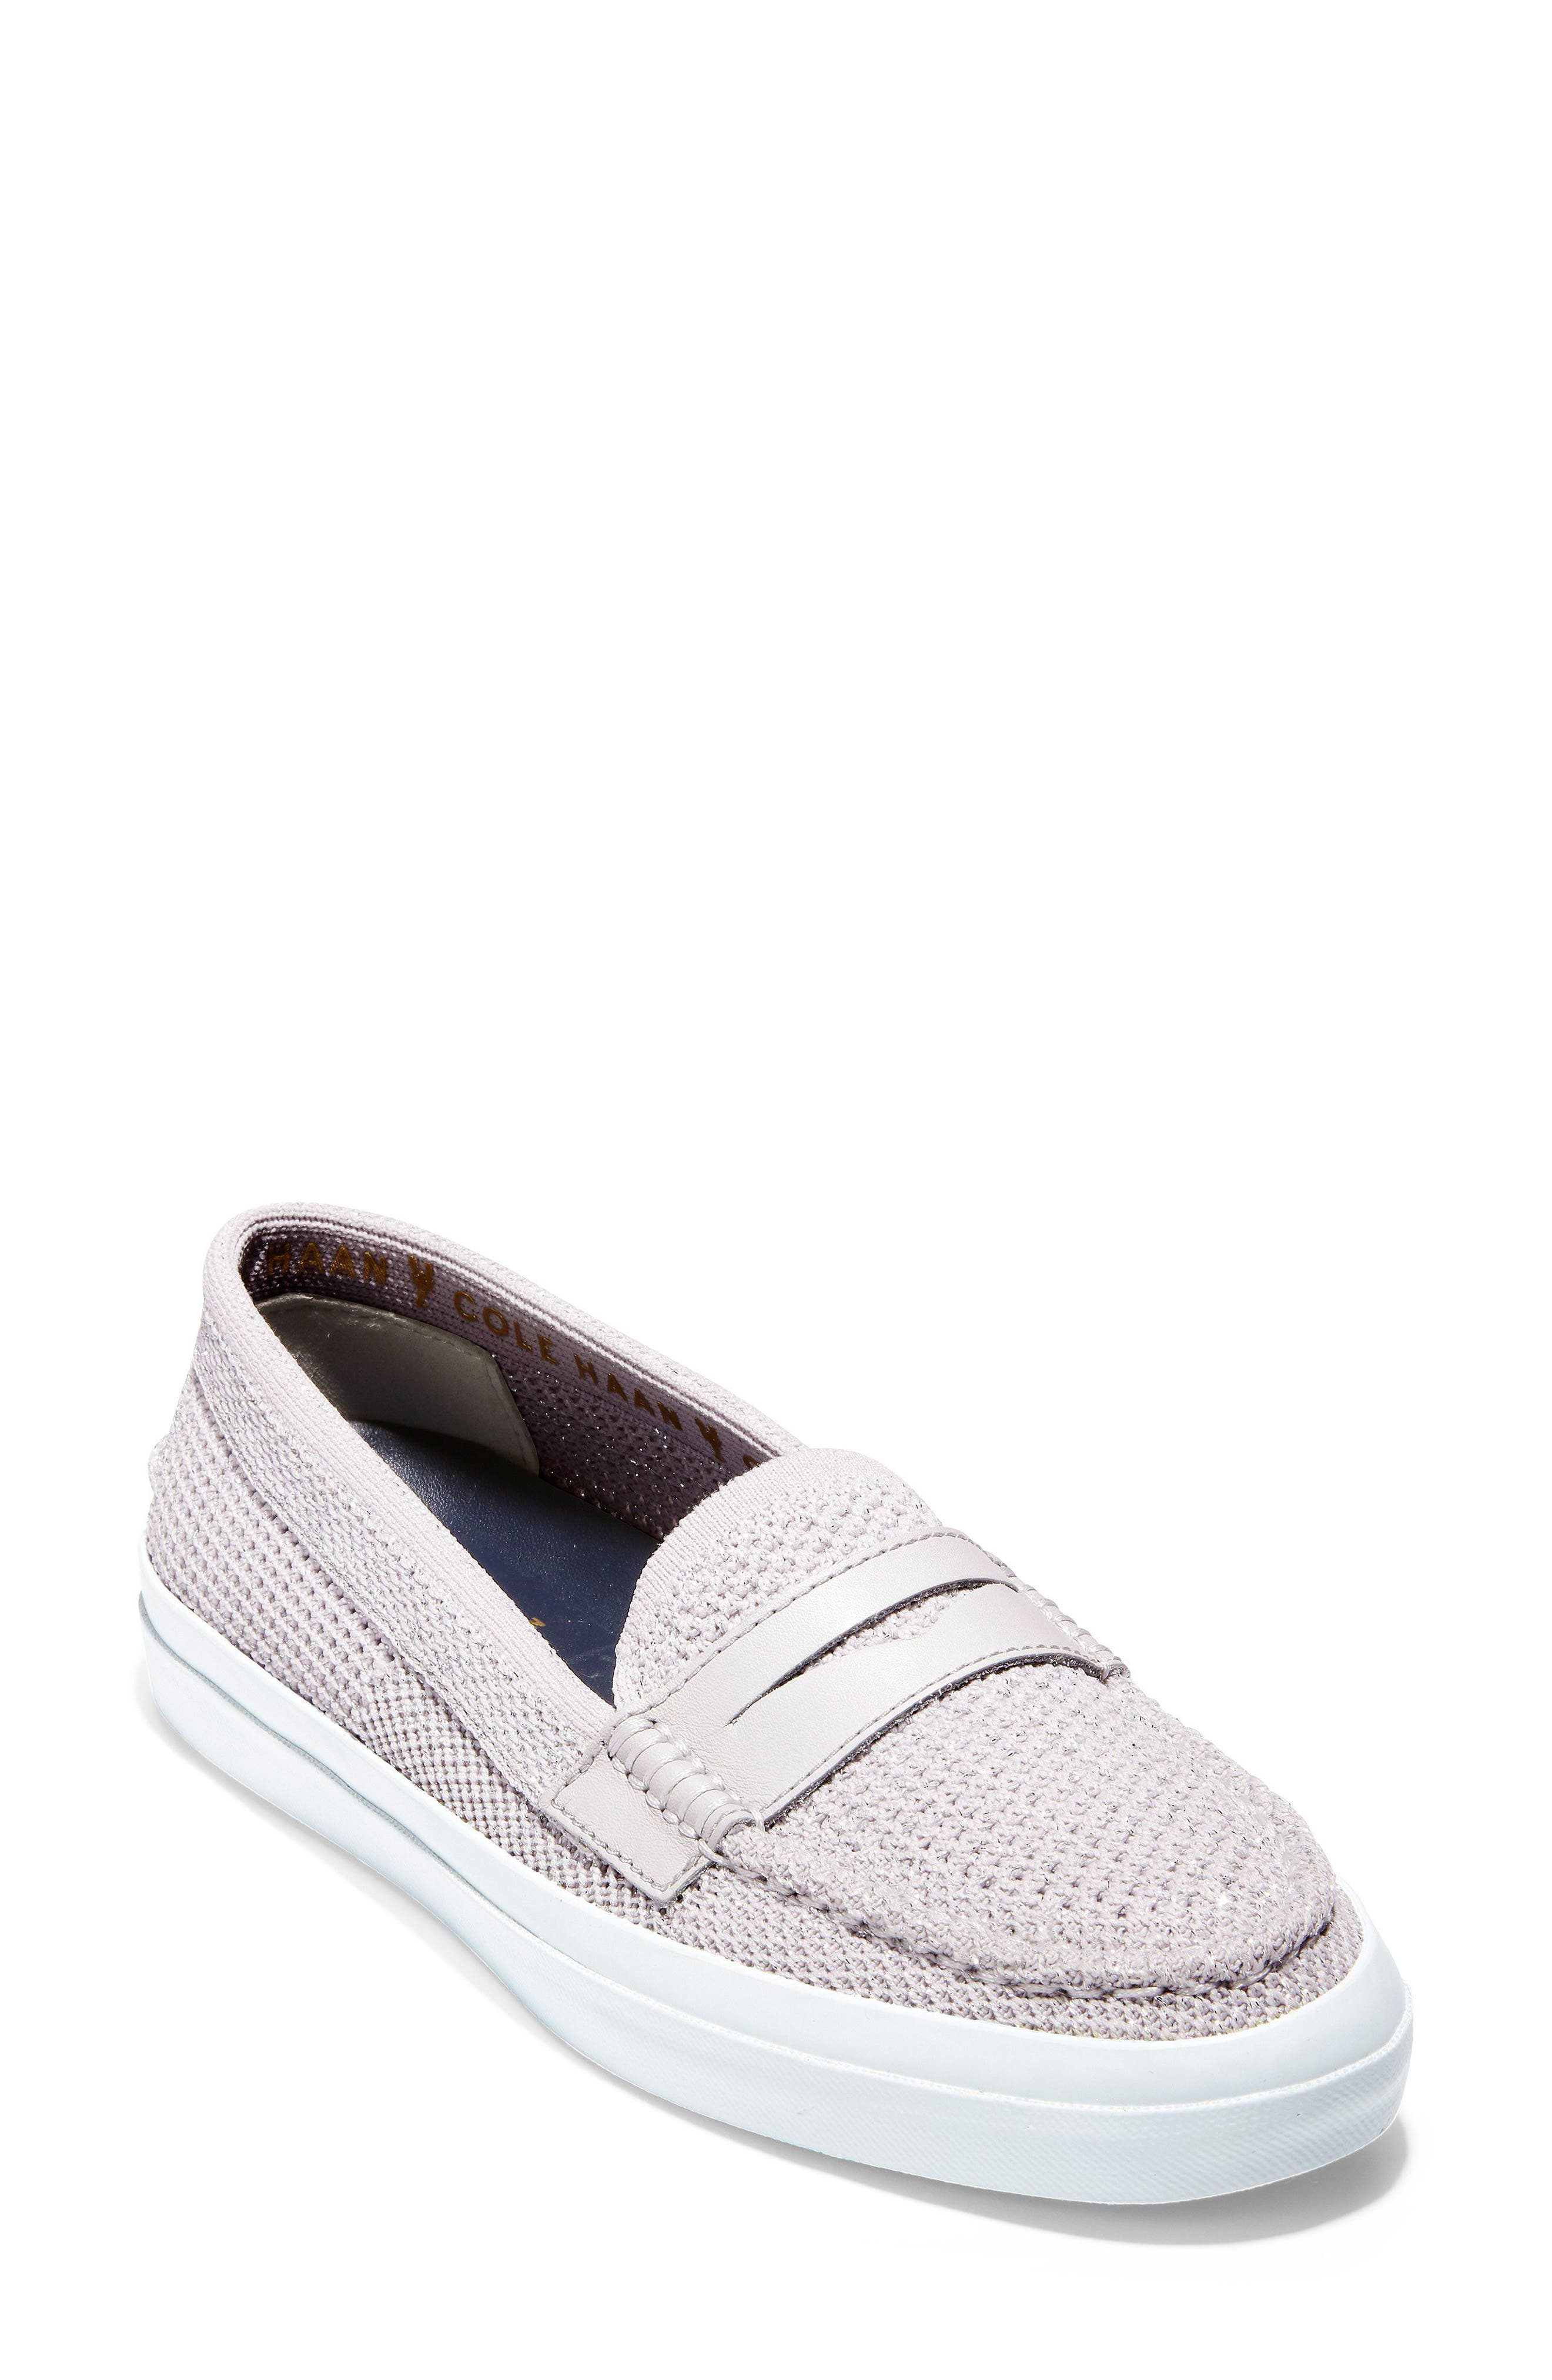 Pinch Stitchlite<sup>™</sup> Loafer,                             Main thumbnail 1, color,                             SILVER/ WHITE LEATHER